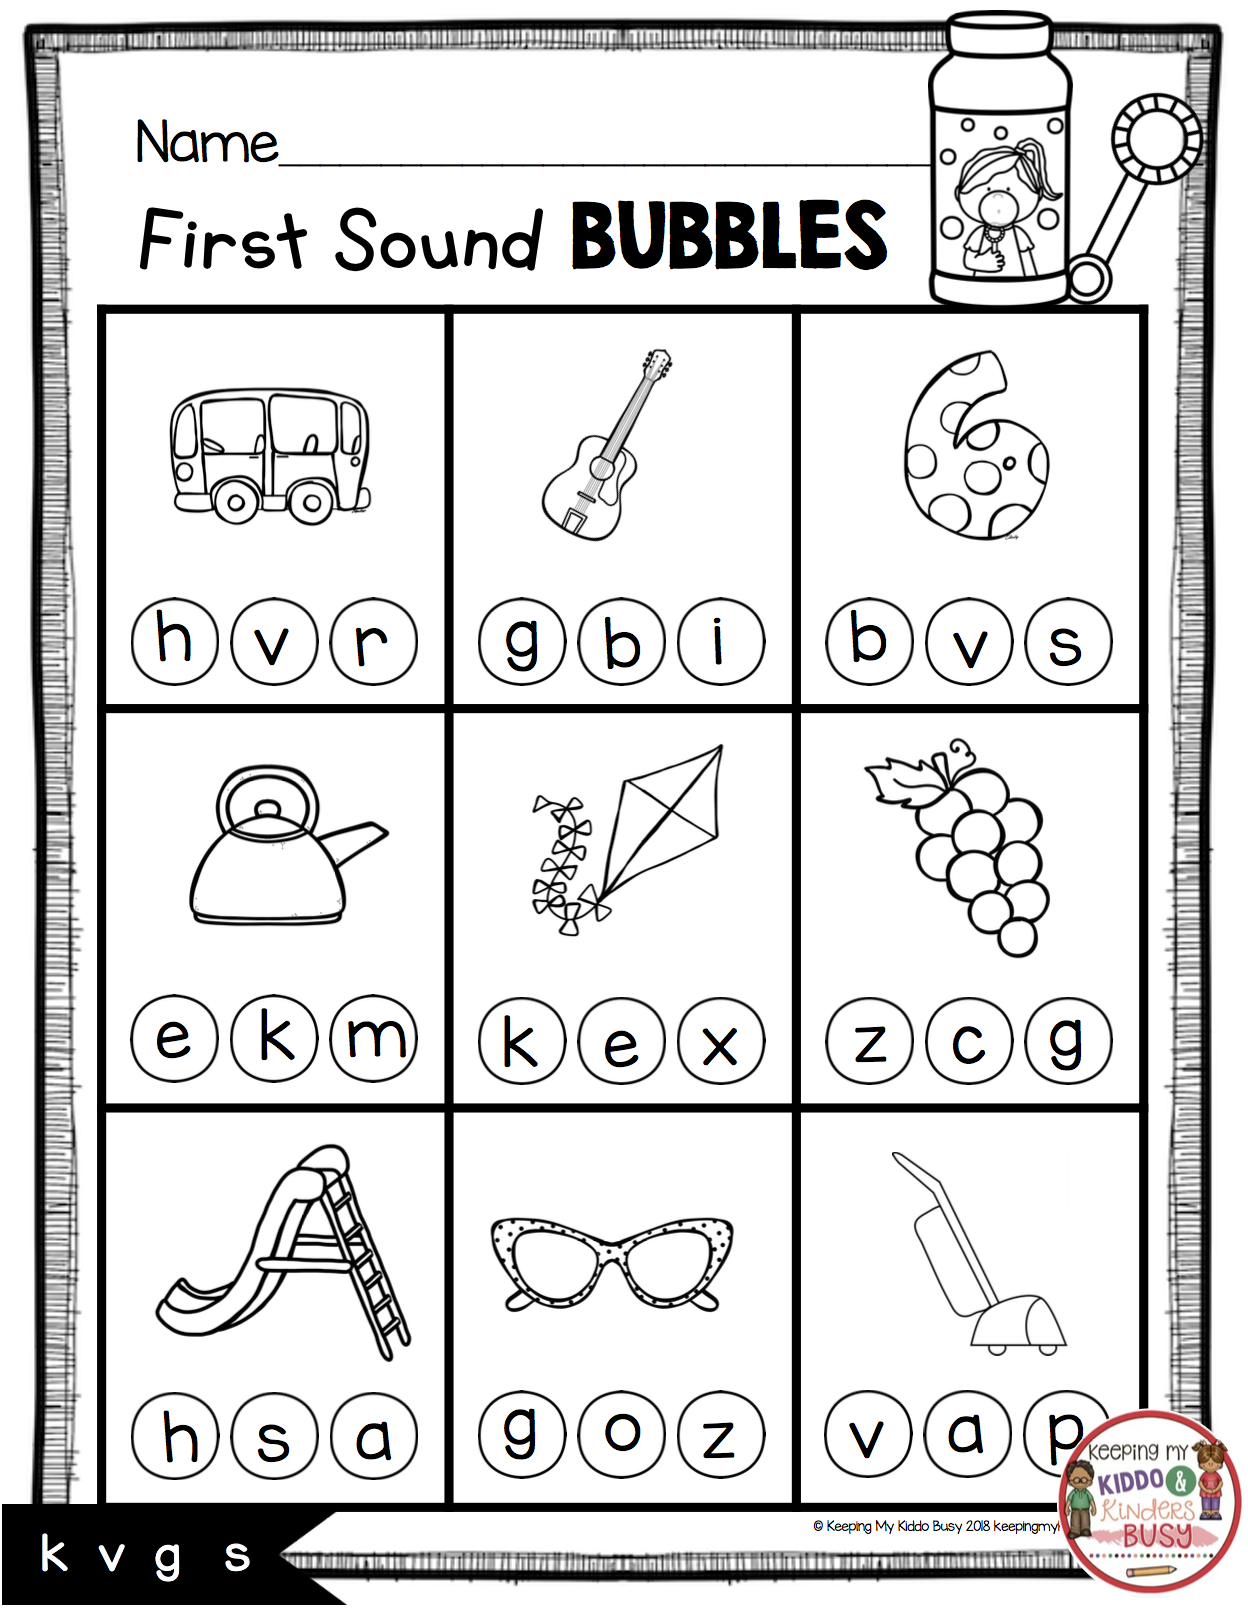 Teaching First Sounds Complete Unit With Freebies Keeping My Kiddo Busy Phonics Games Kindergarten Phonics Kindergarten Kindergarten Phonics Worksheets [ 1614 x 1248 Pixel ]